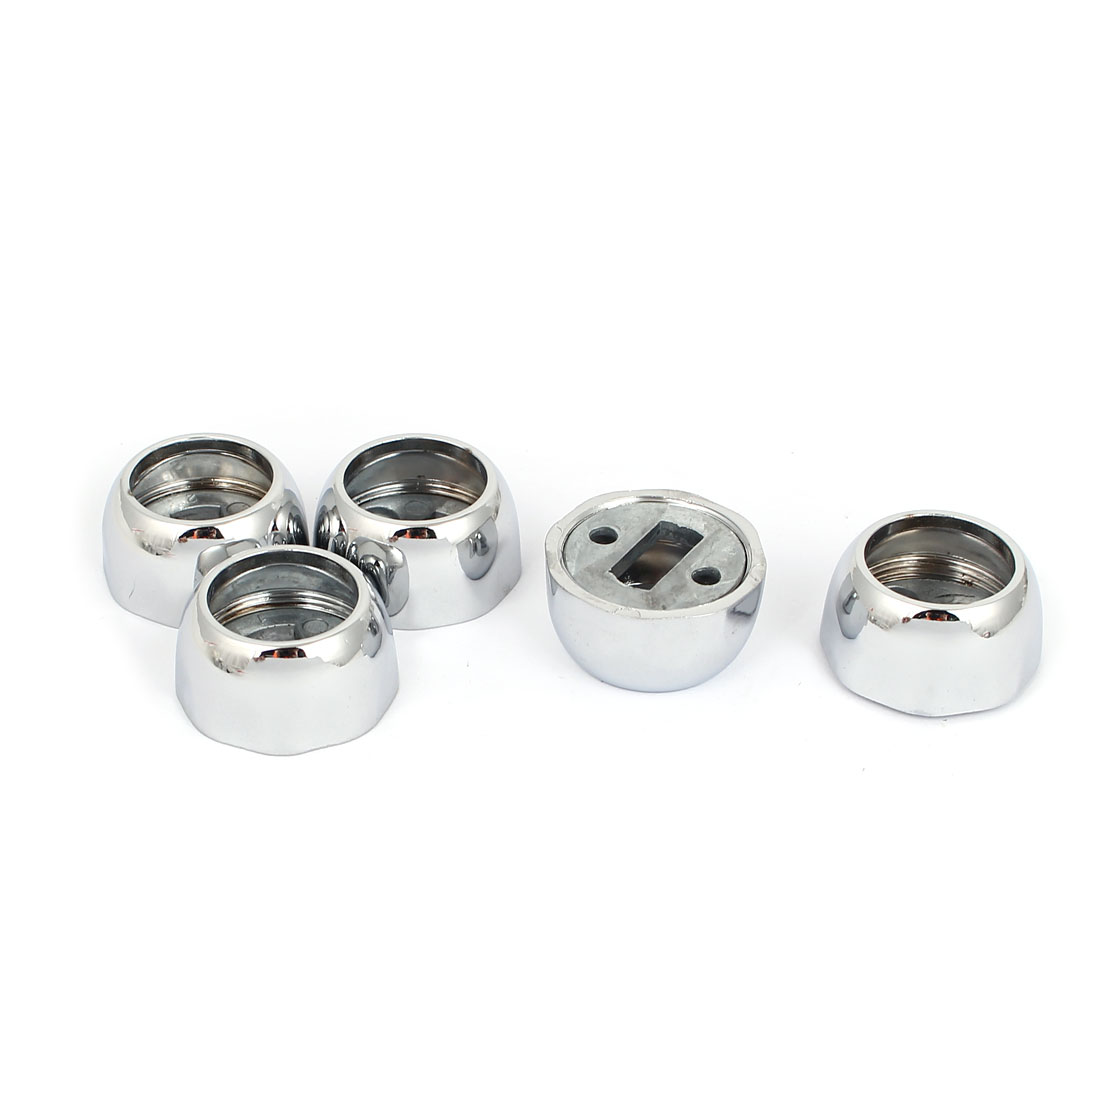 22mm Dia Closet Rod Flange Octagonal Socket Holder Bracket Silver Tone 5pcs